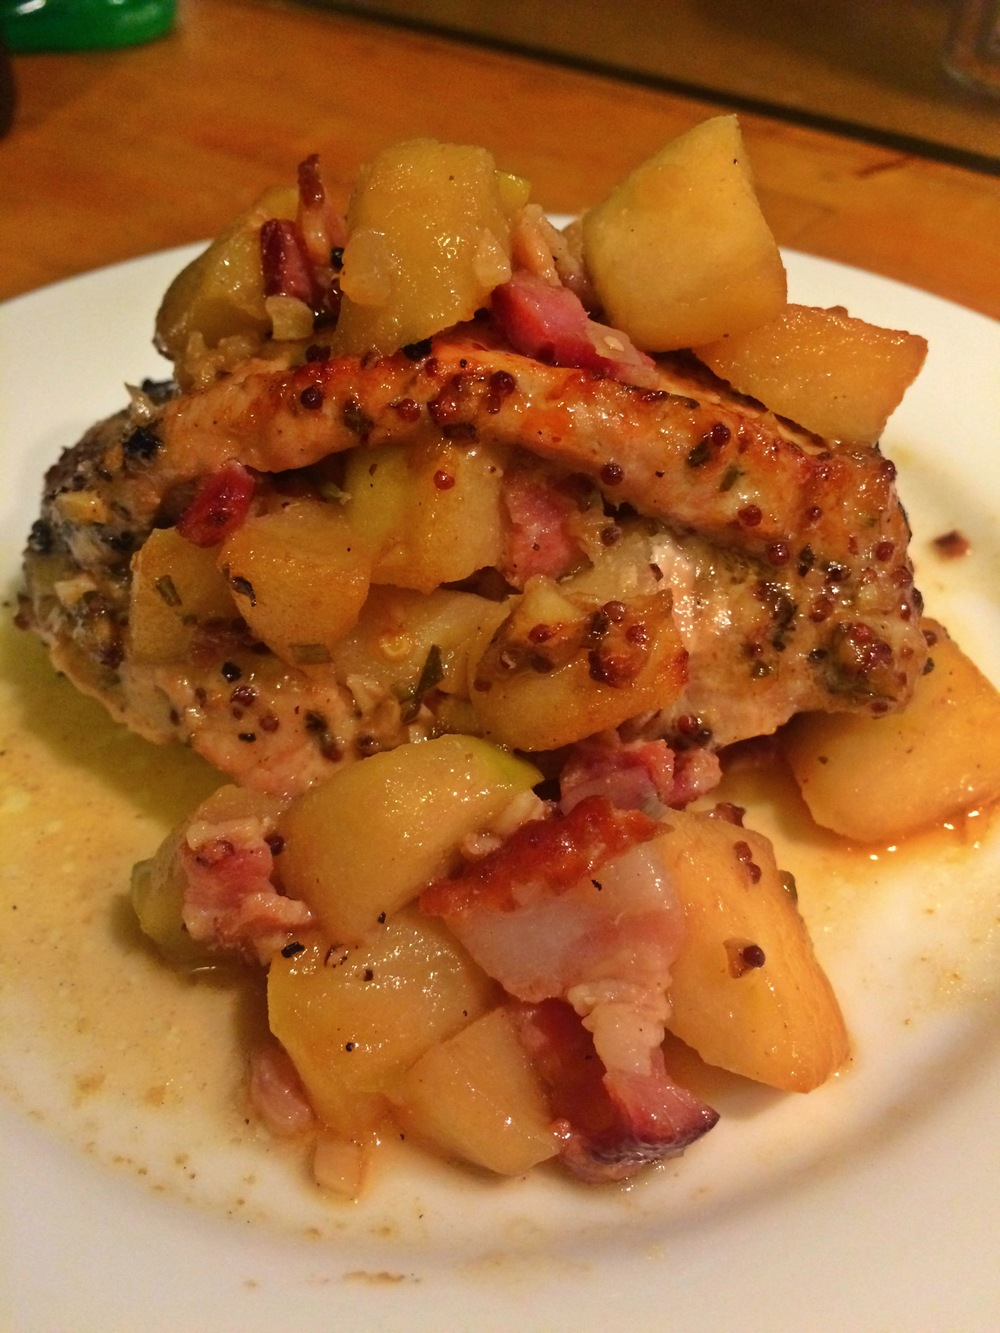 Apple and Bacon stuffed pork chops